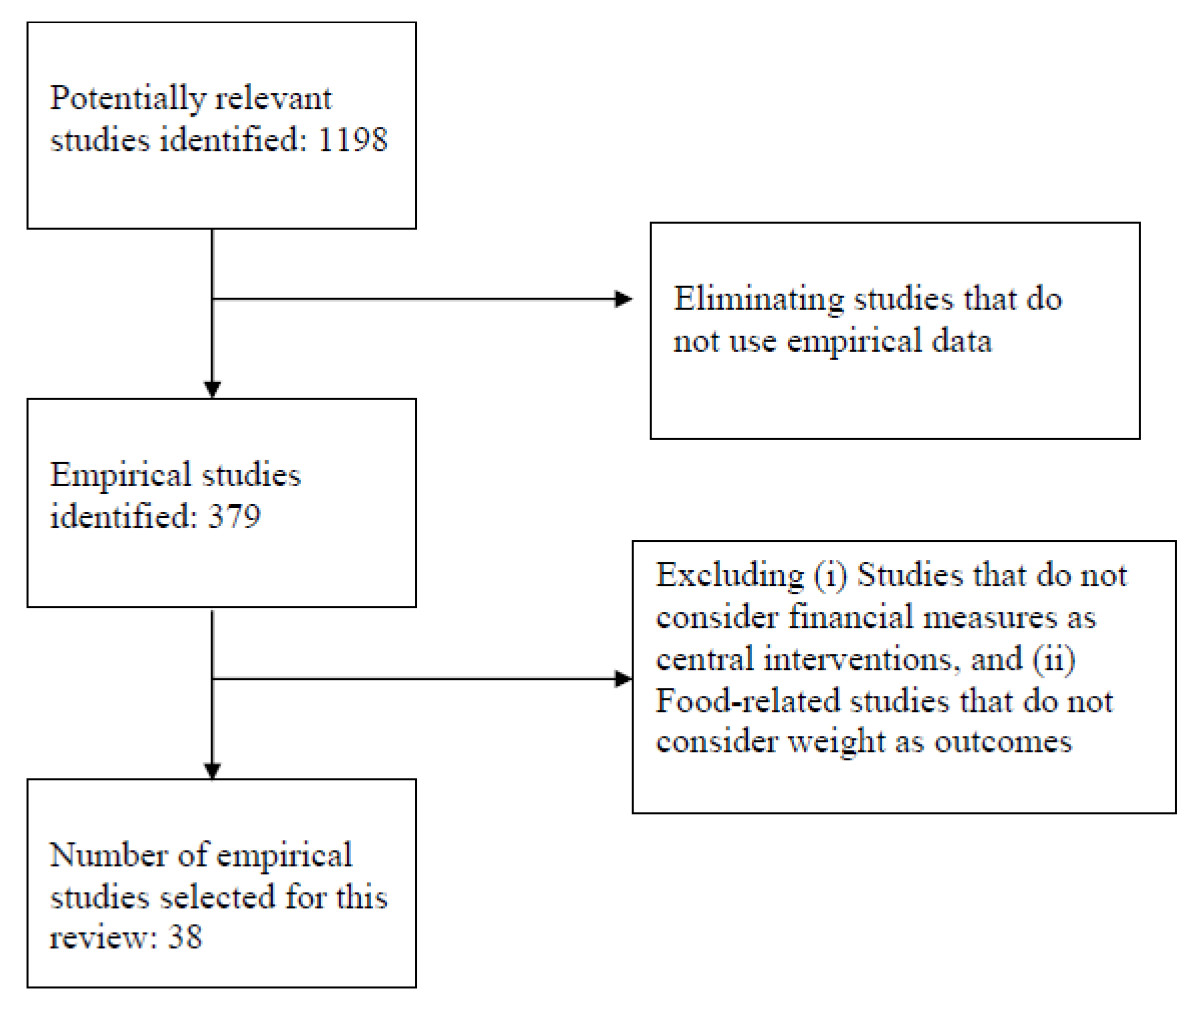 https://static-content.springer.com/image/art%3A10.1186%2F1479-5868-8-109/MediaObjects/12966_2011_Article_505_Fig1_HTML.jpg